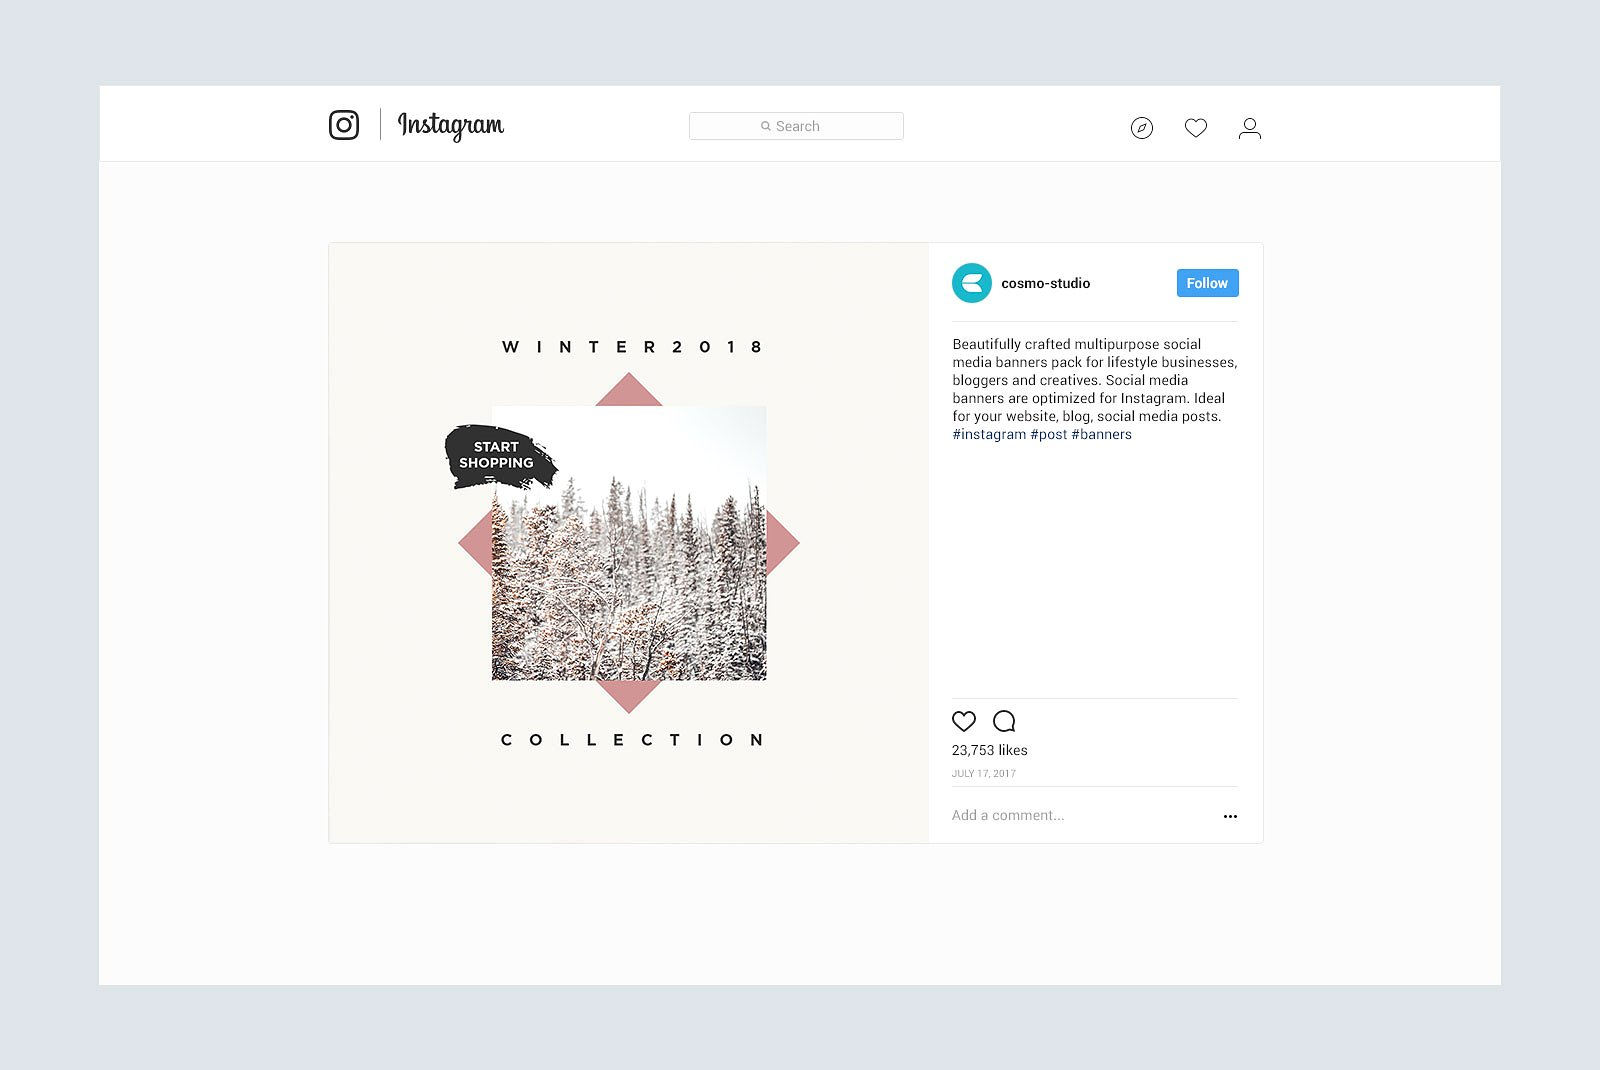 Gravity Instagram Pack Graphic Web Elements By wally6484 - Image 6